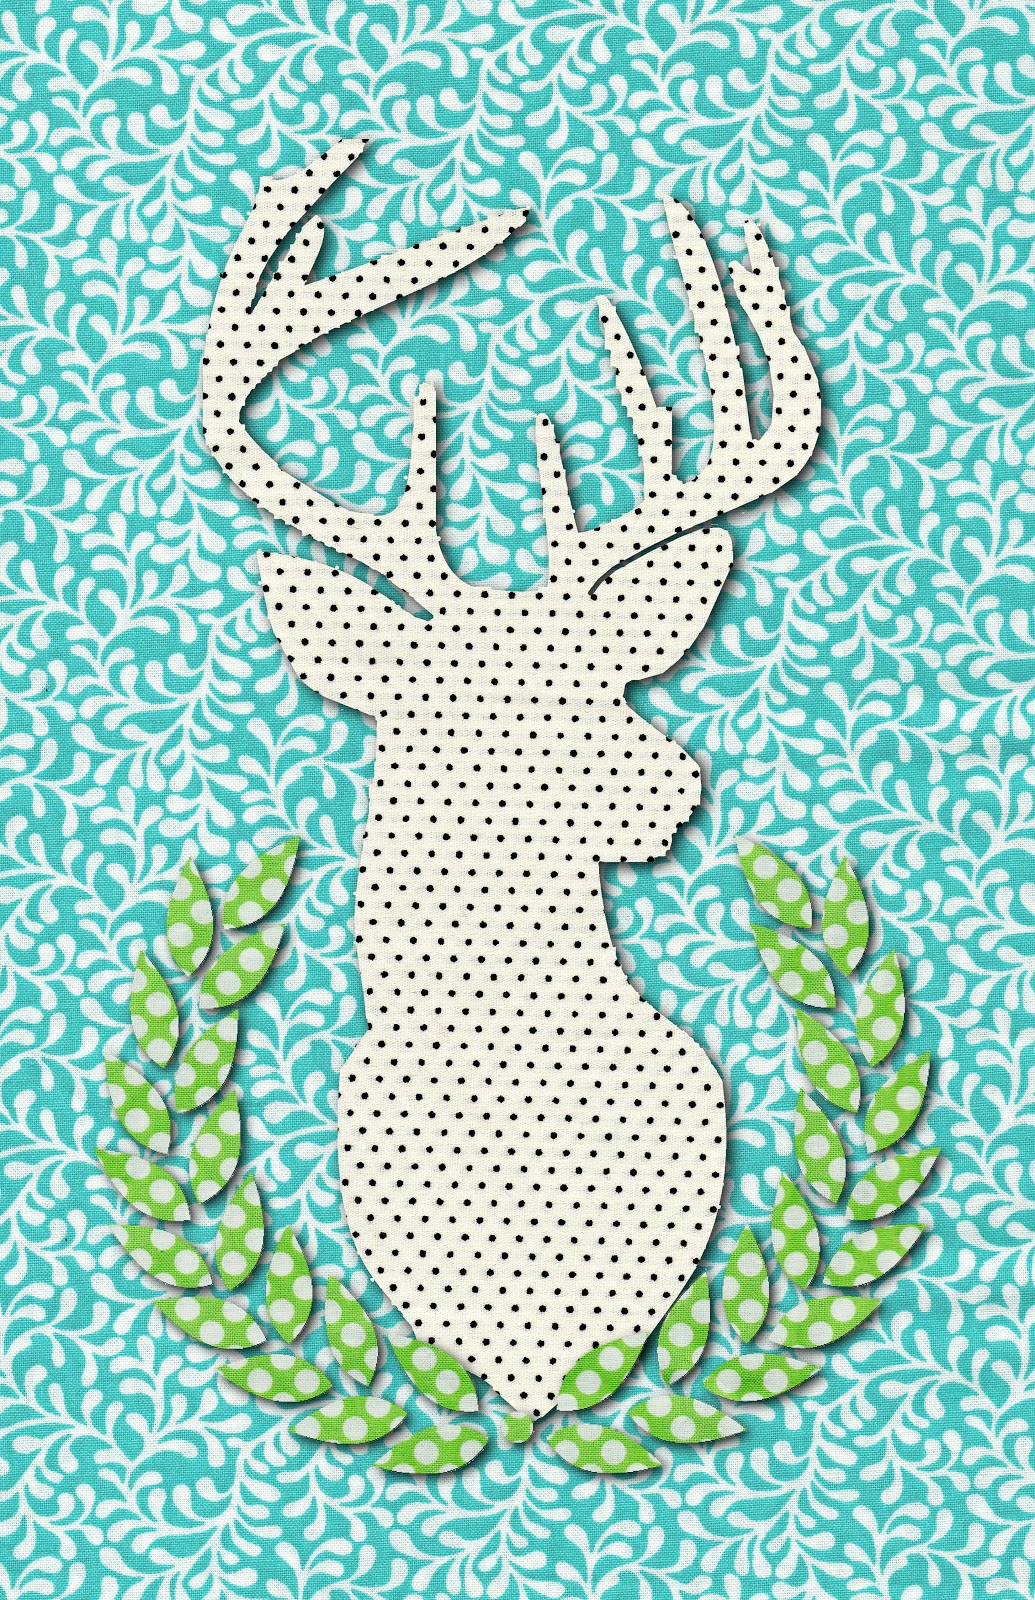 Free Printable Deer Head Art at my3monsters.com